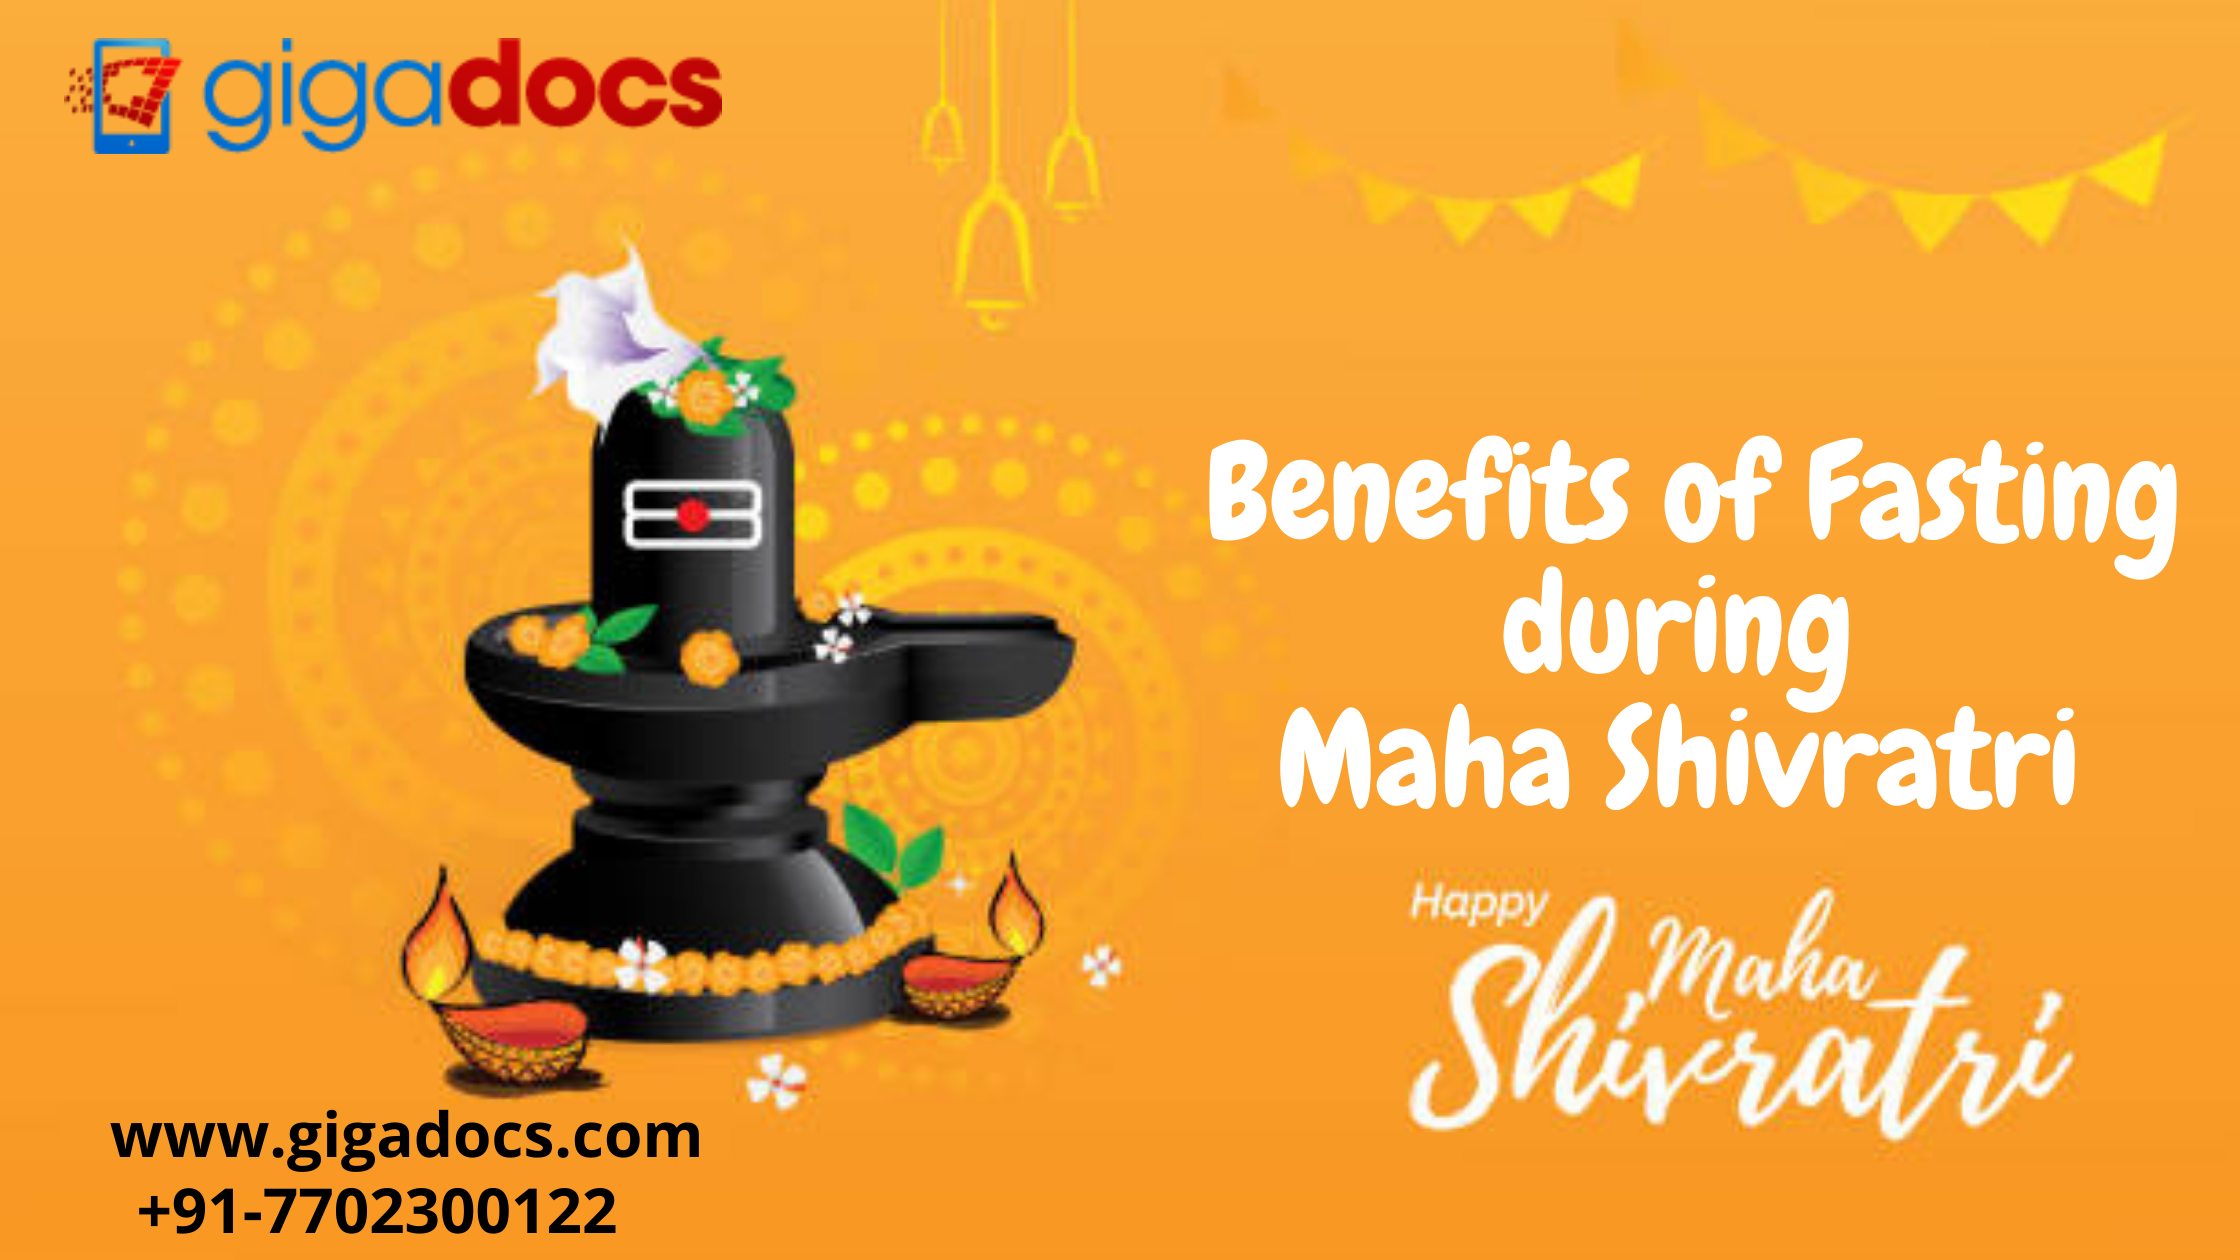 Benefits of Fasting during Maha Shivratri 2021